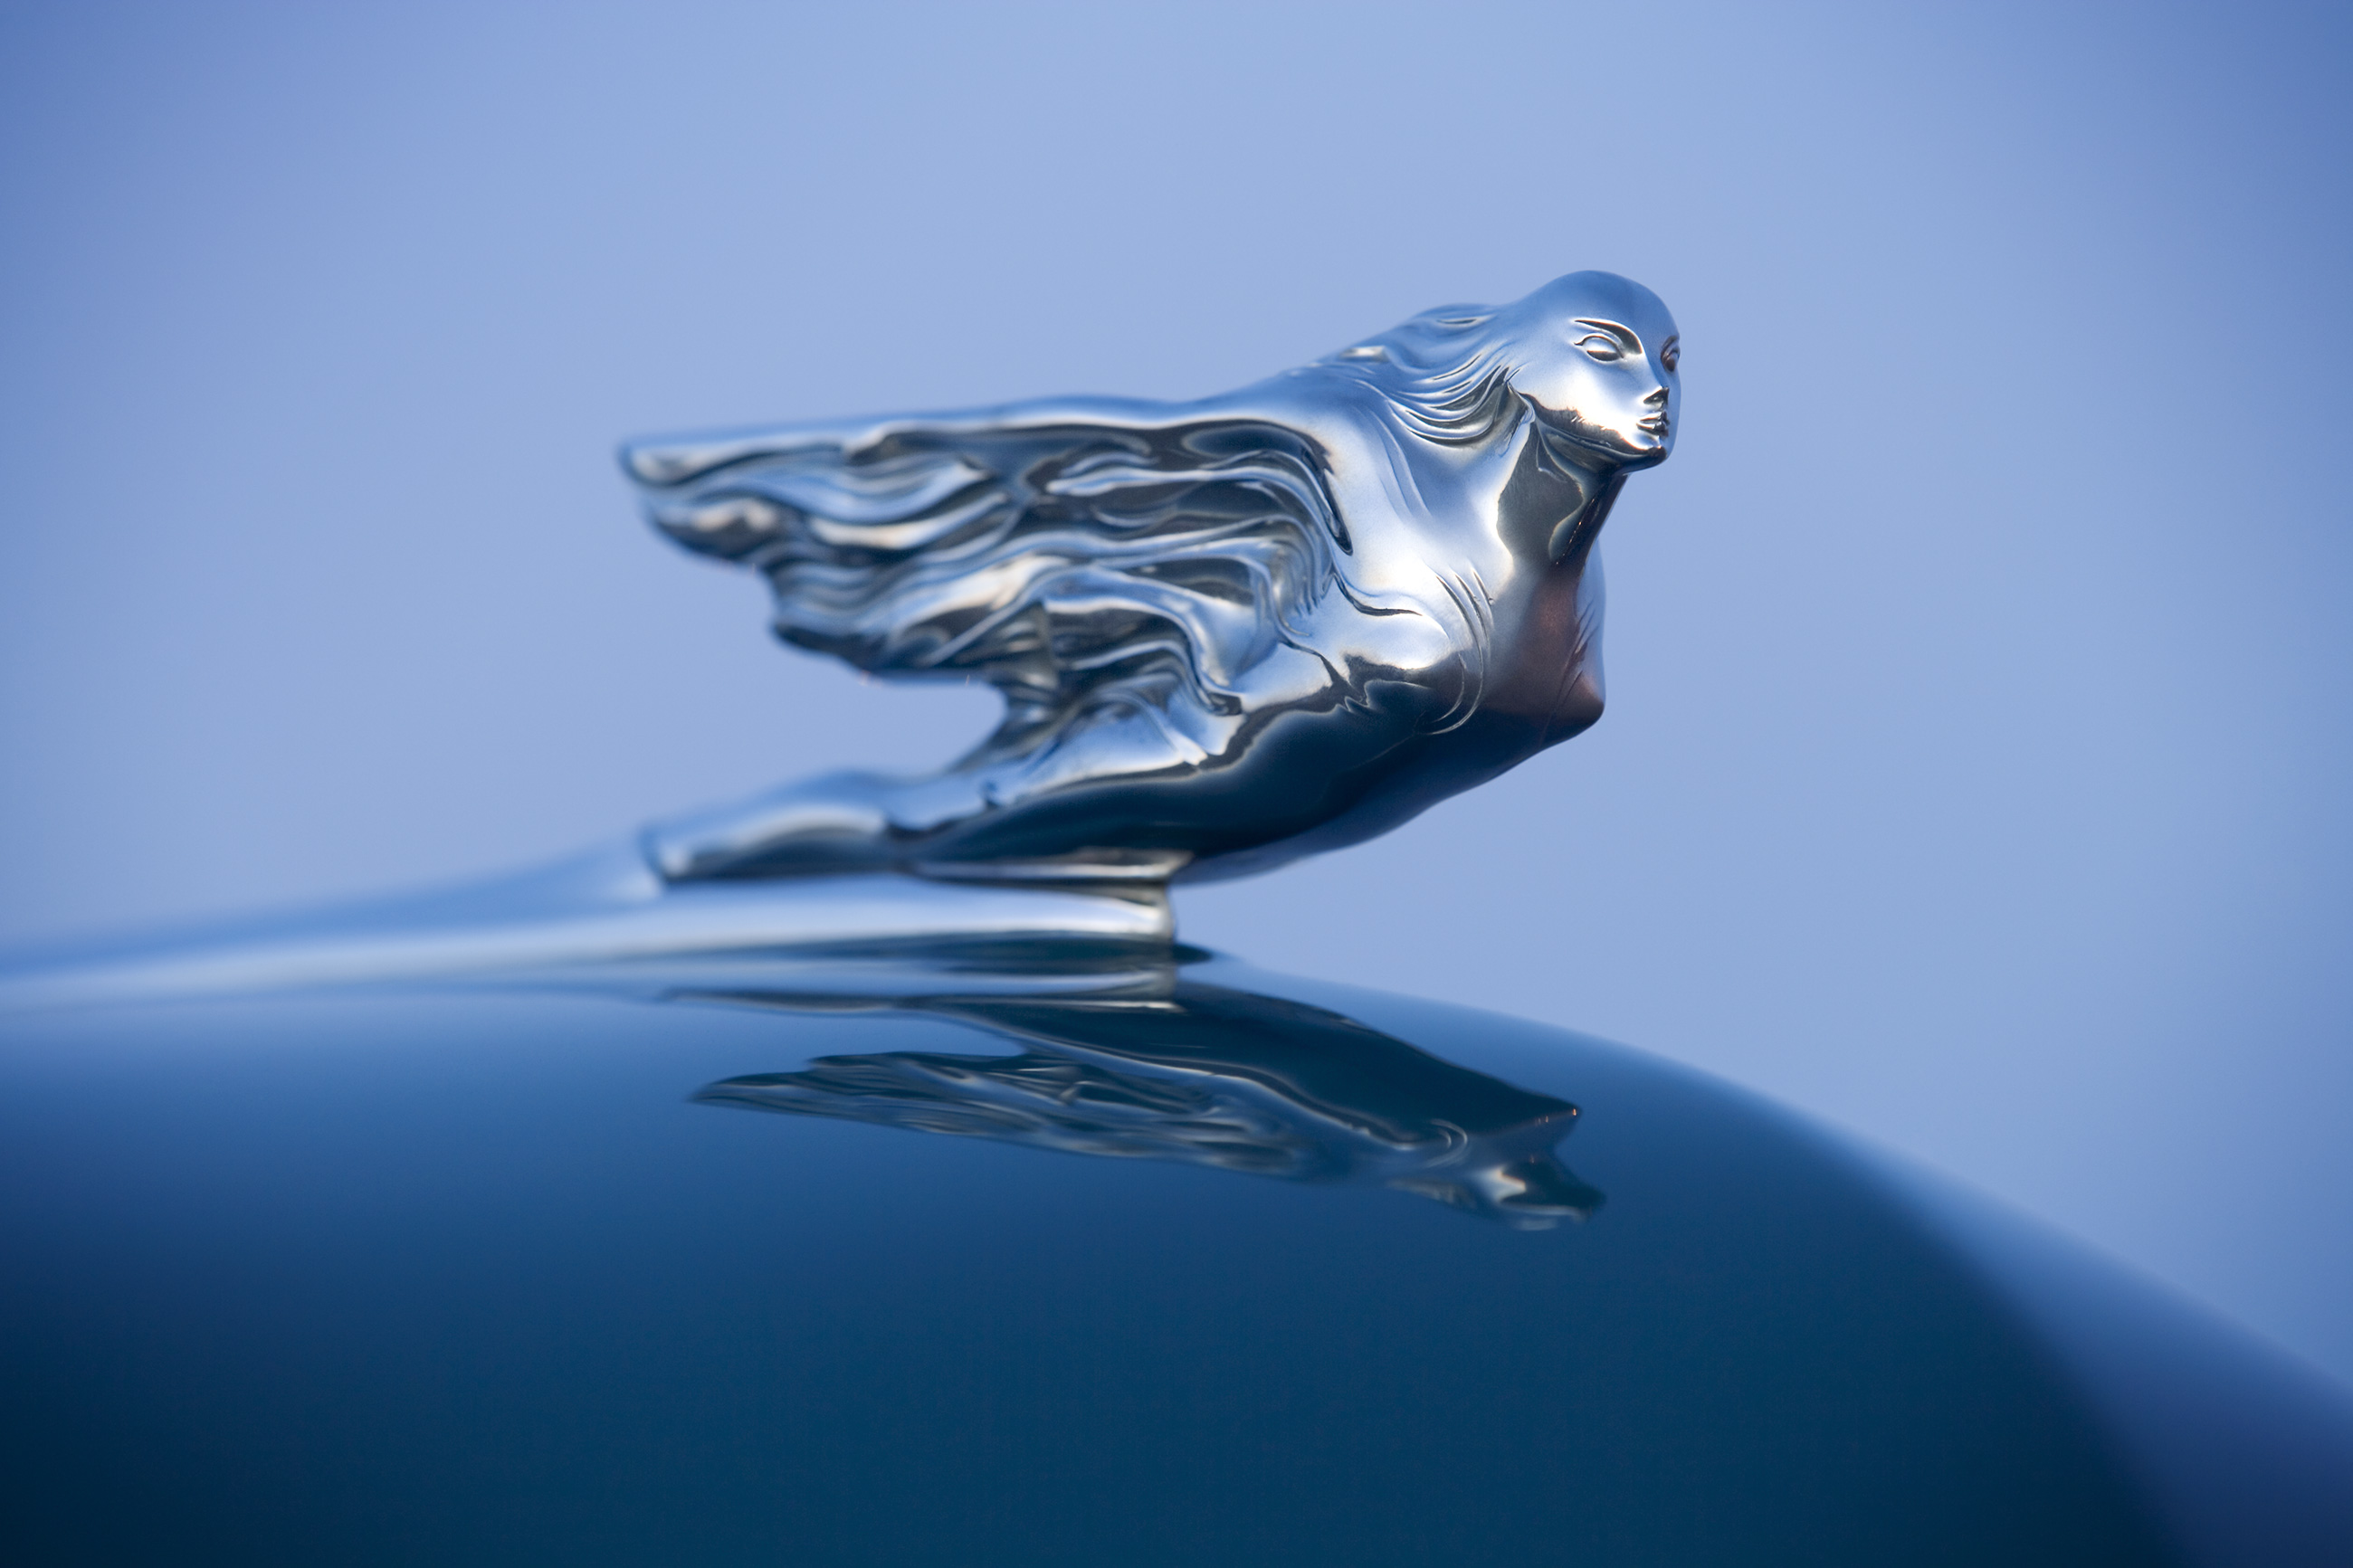 1941 Cadillac - Hood Ornament